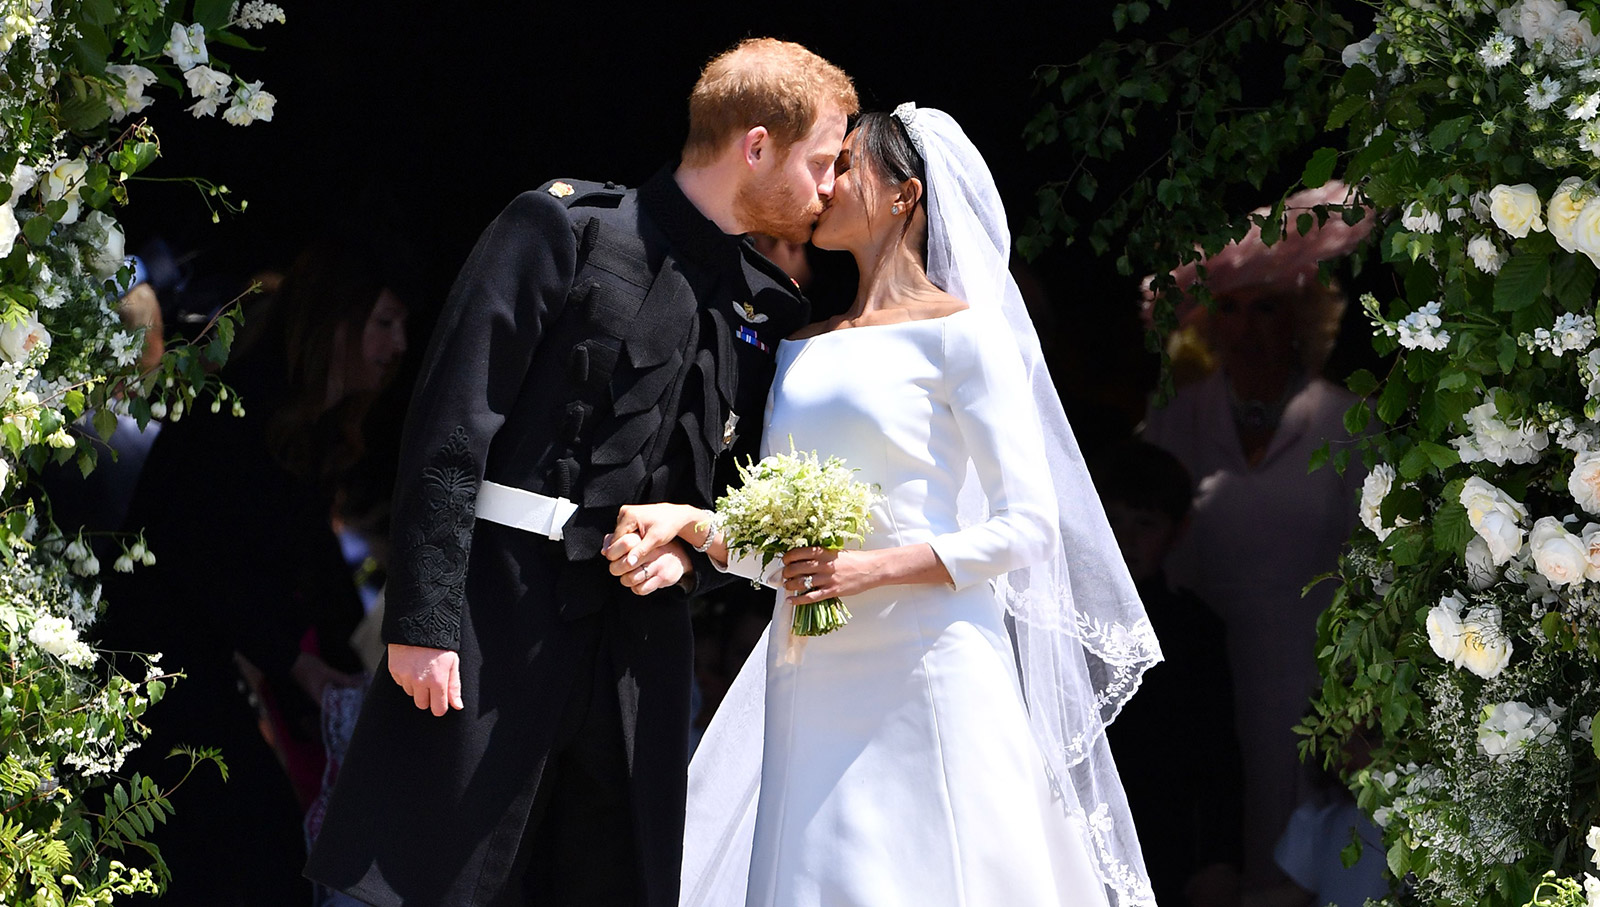 Prince Harry And Meghan Markle Wedding.The Royal Wedding In Pictures Cnn Com